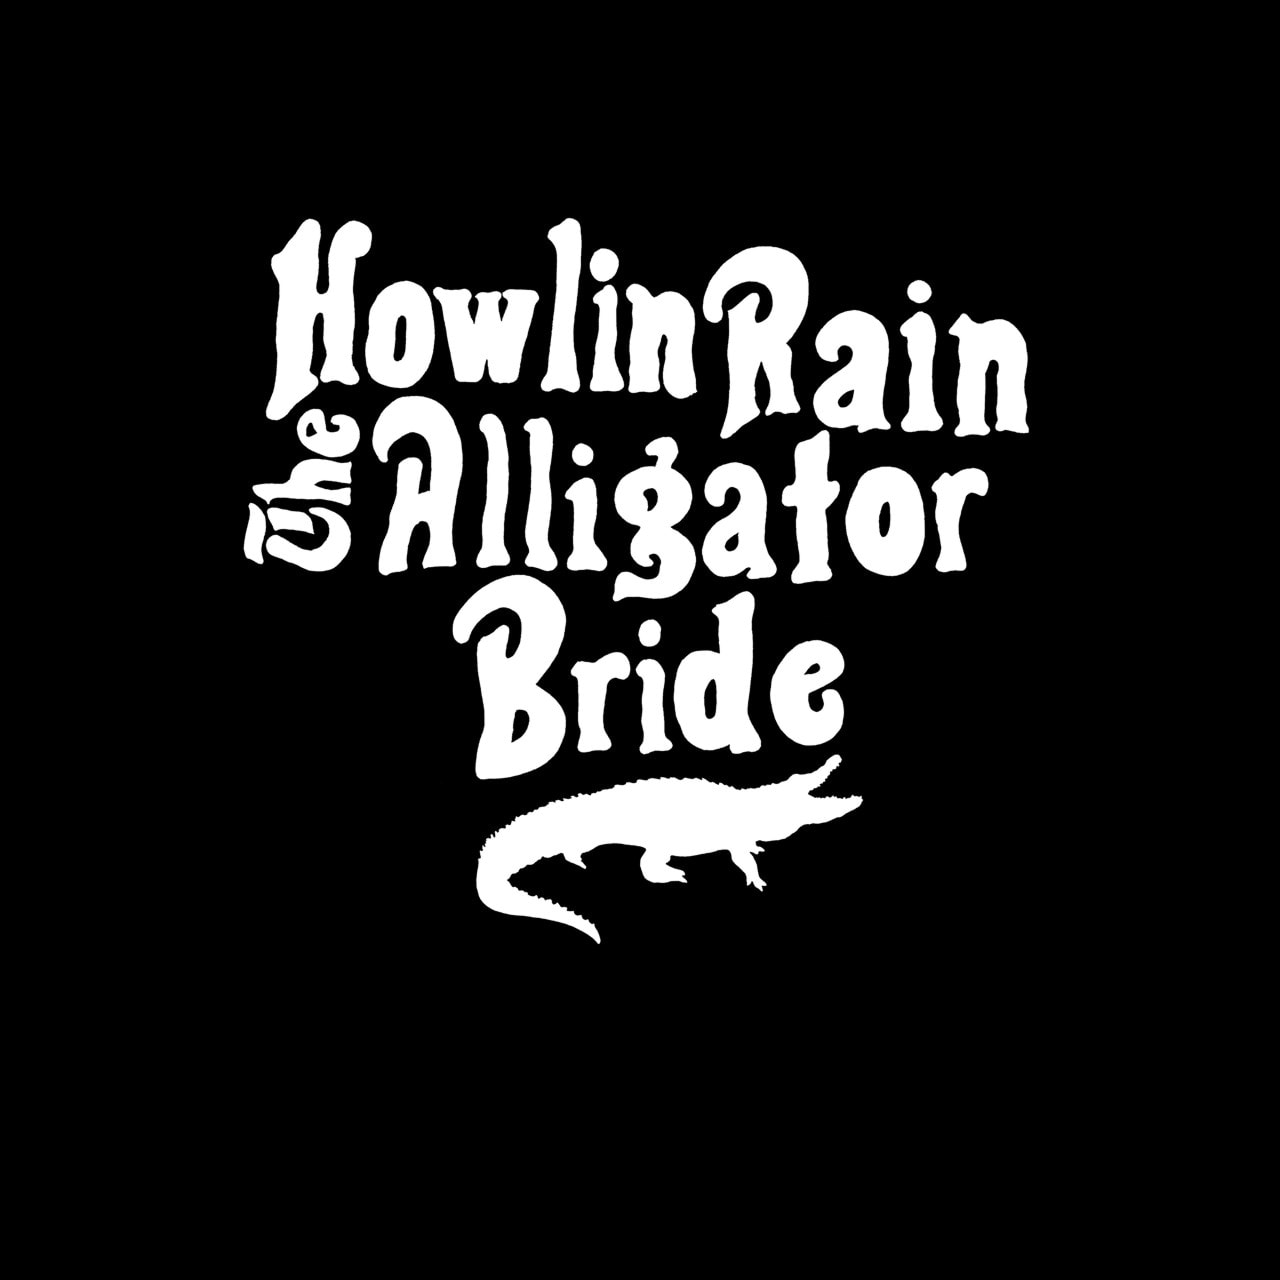 Alligator Bride - 1